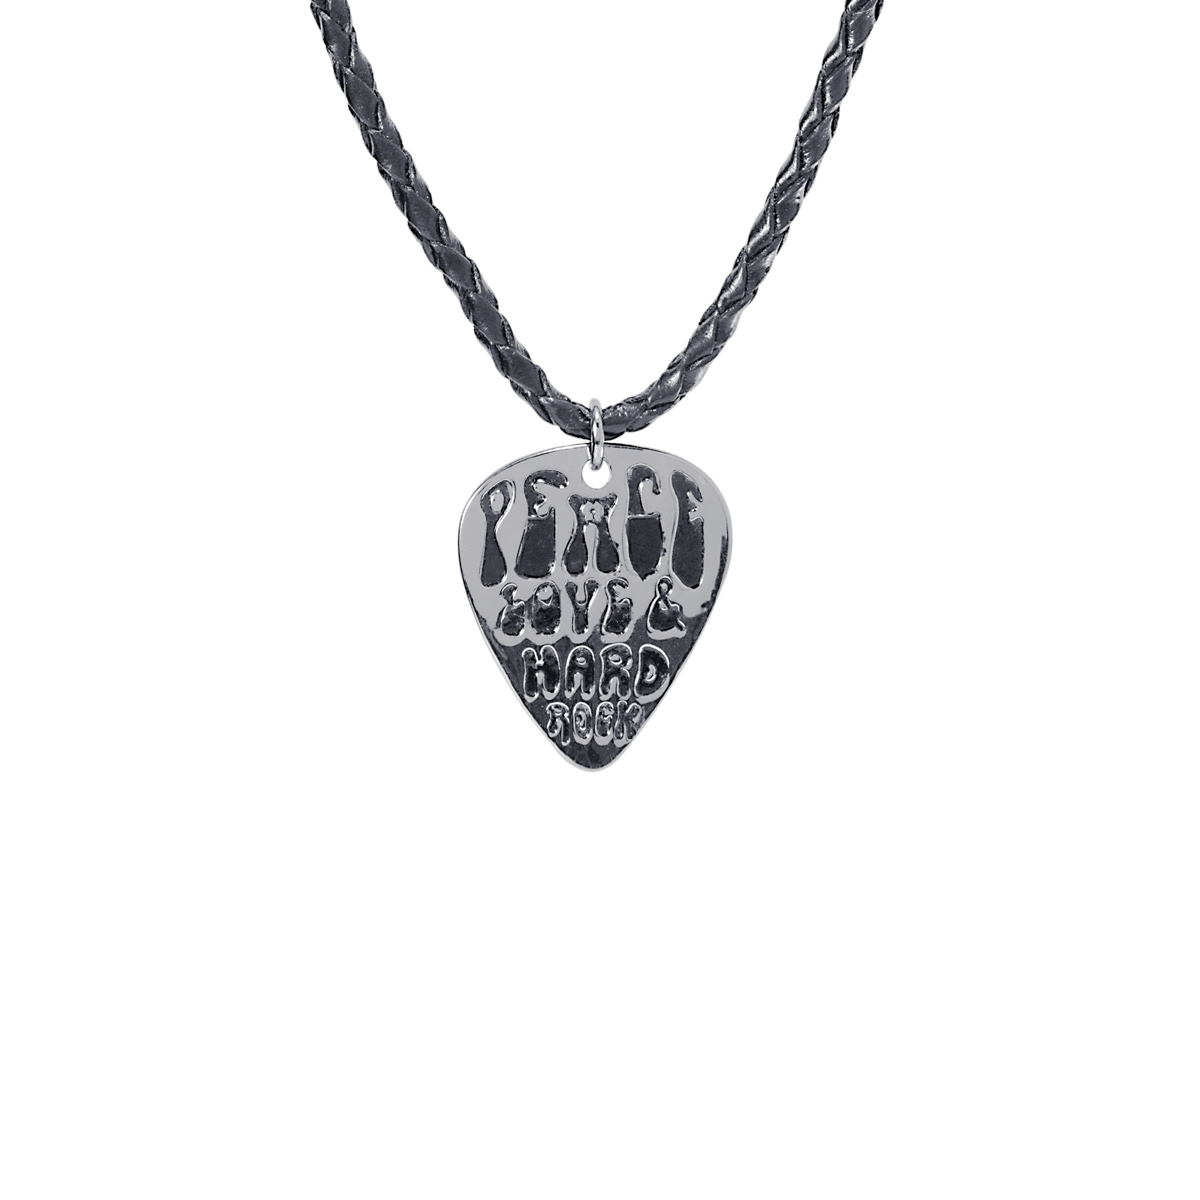 Leather Cord Guitar Pick Pendant Necklace